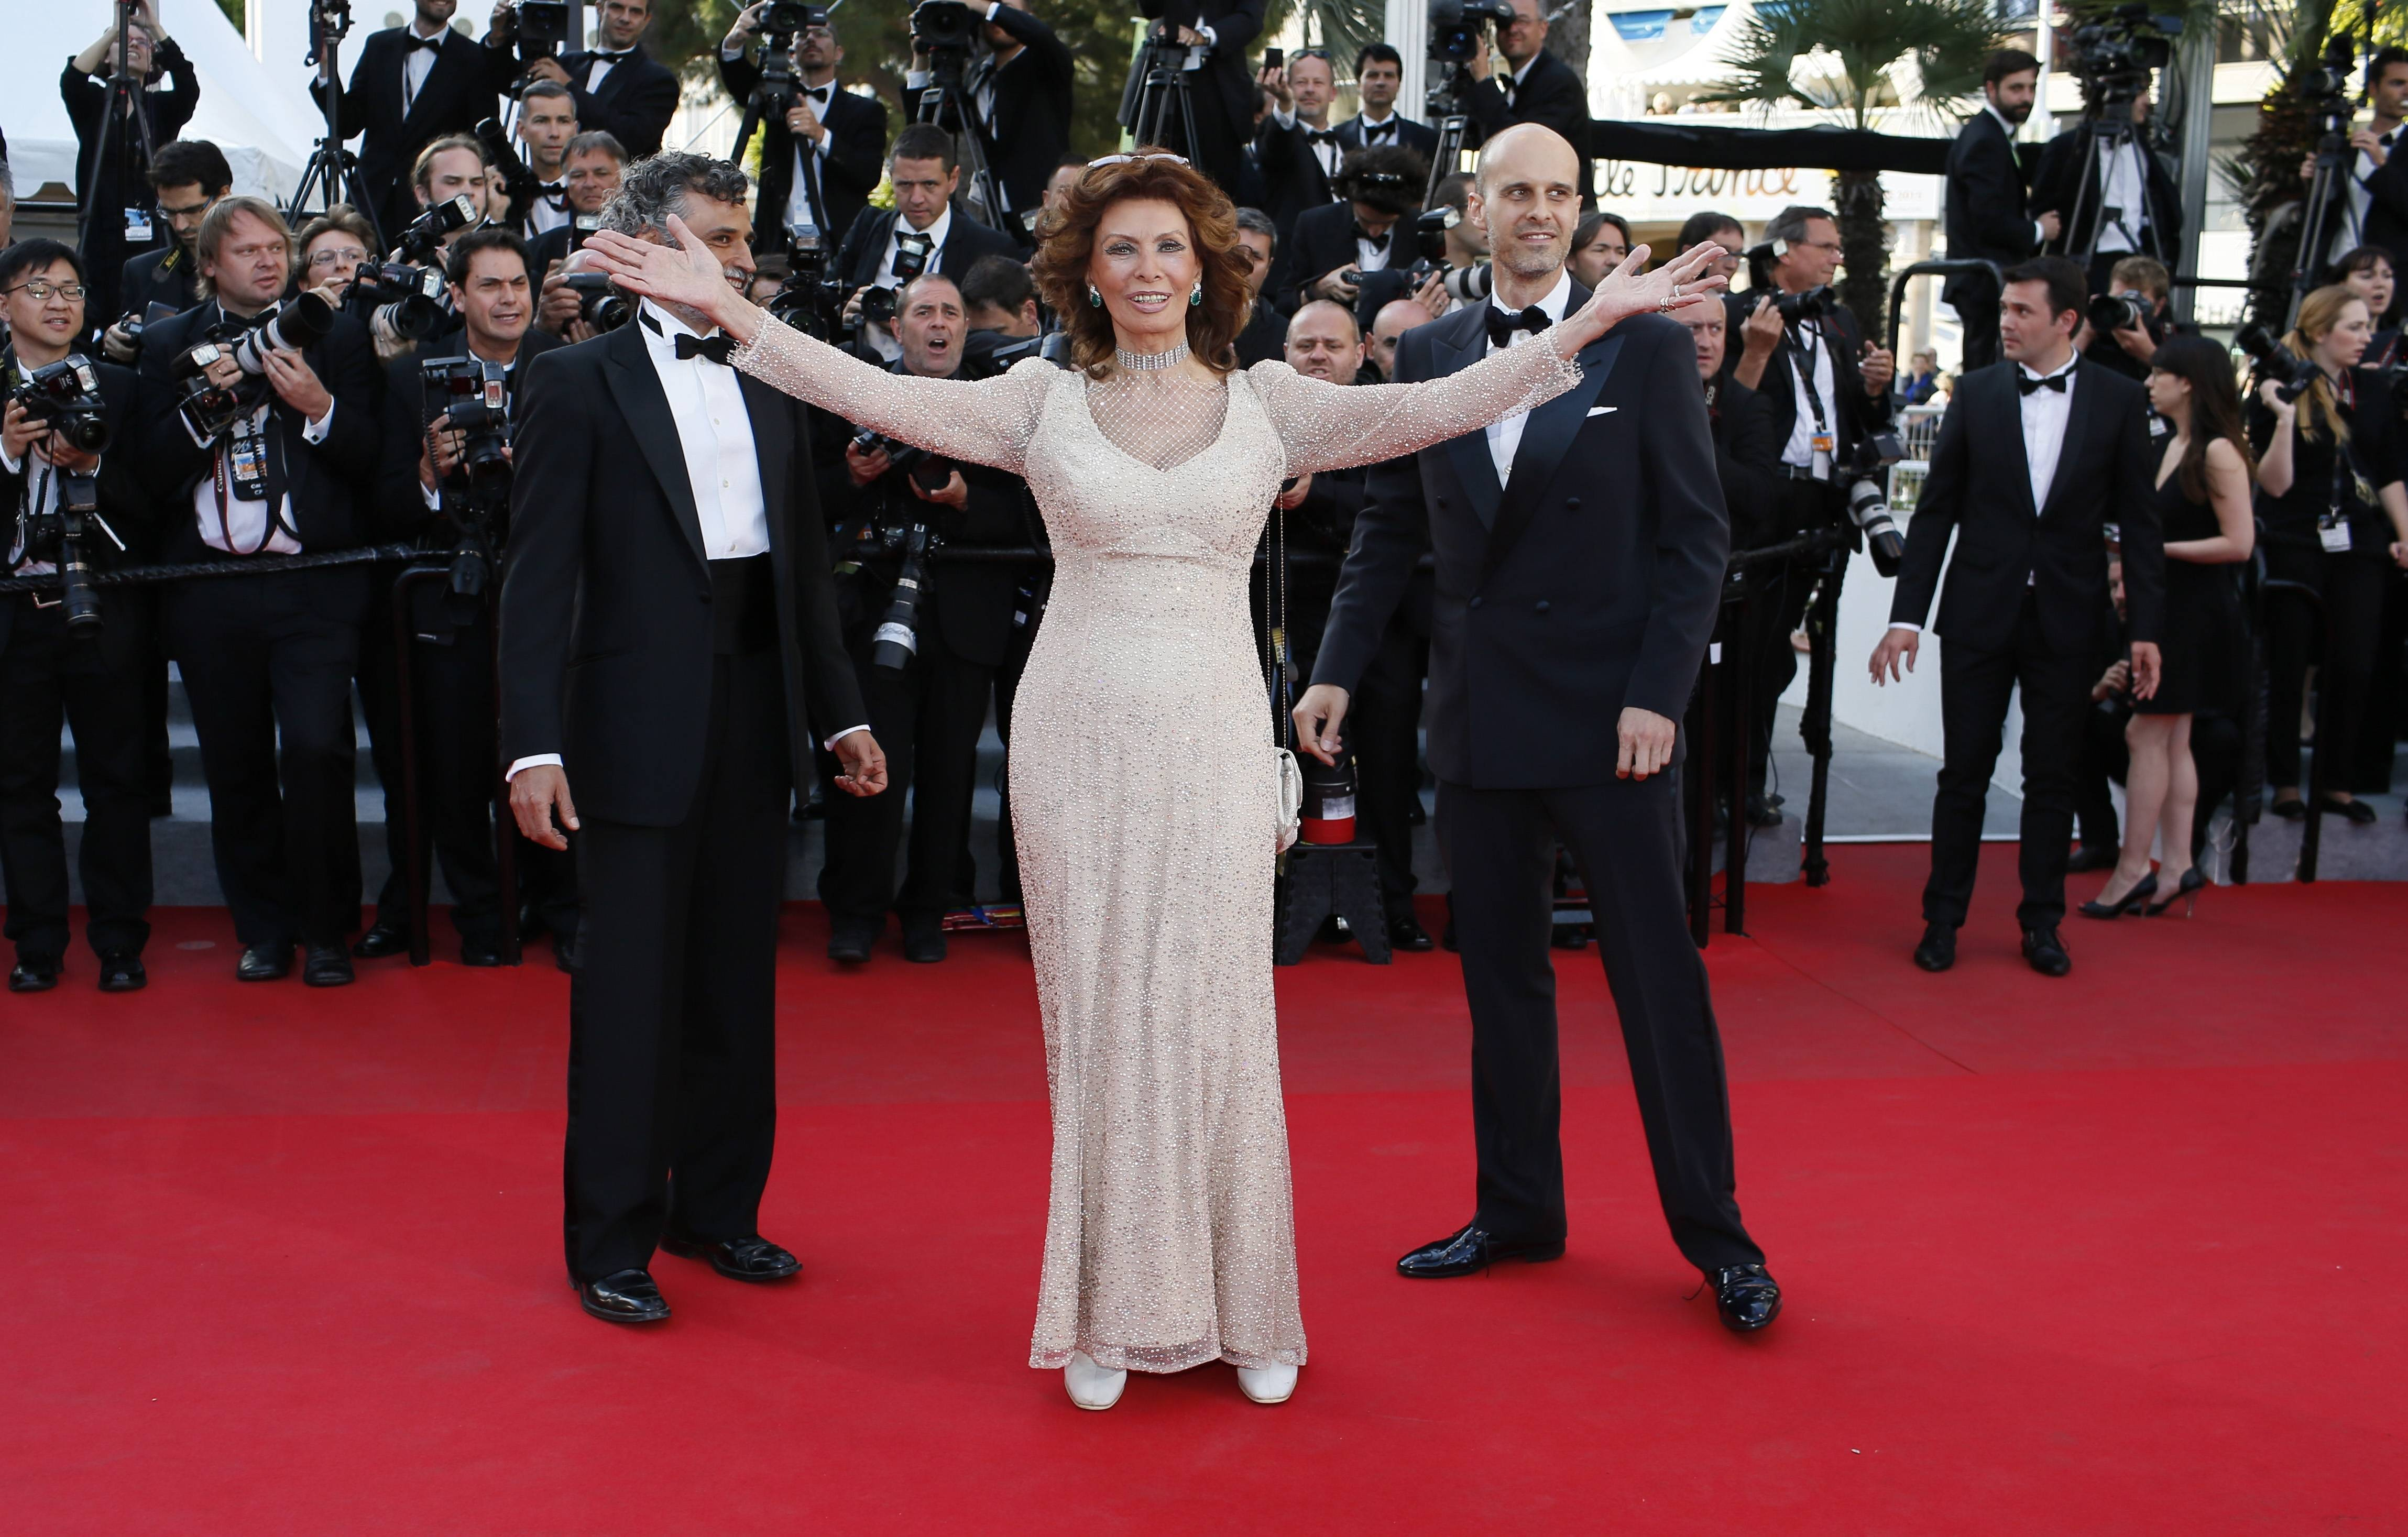 "Actress Sophia Loren arrives for the May 20 screening of 'Two Days, One Night (Deux jours, une nuit)"" at the 67th annual Cannes Film Festival in southern France."